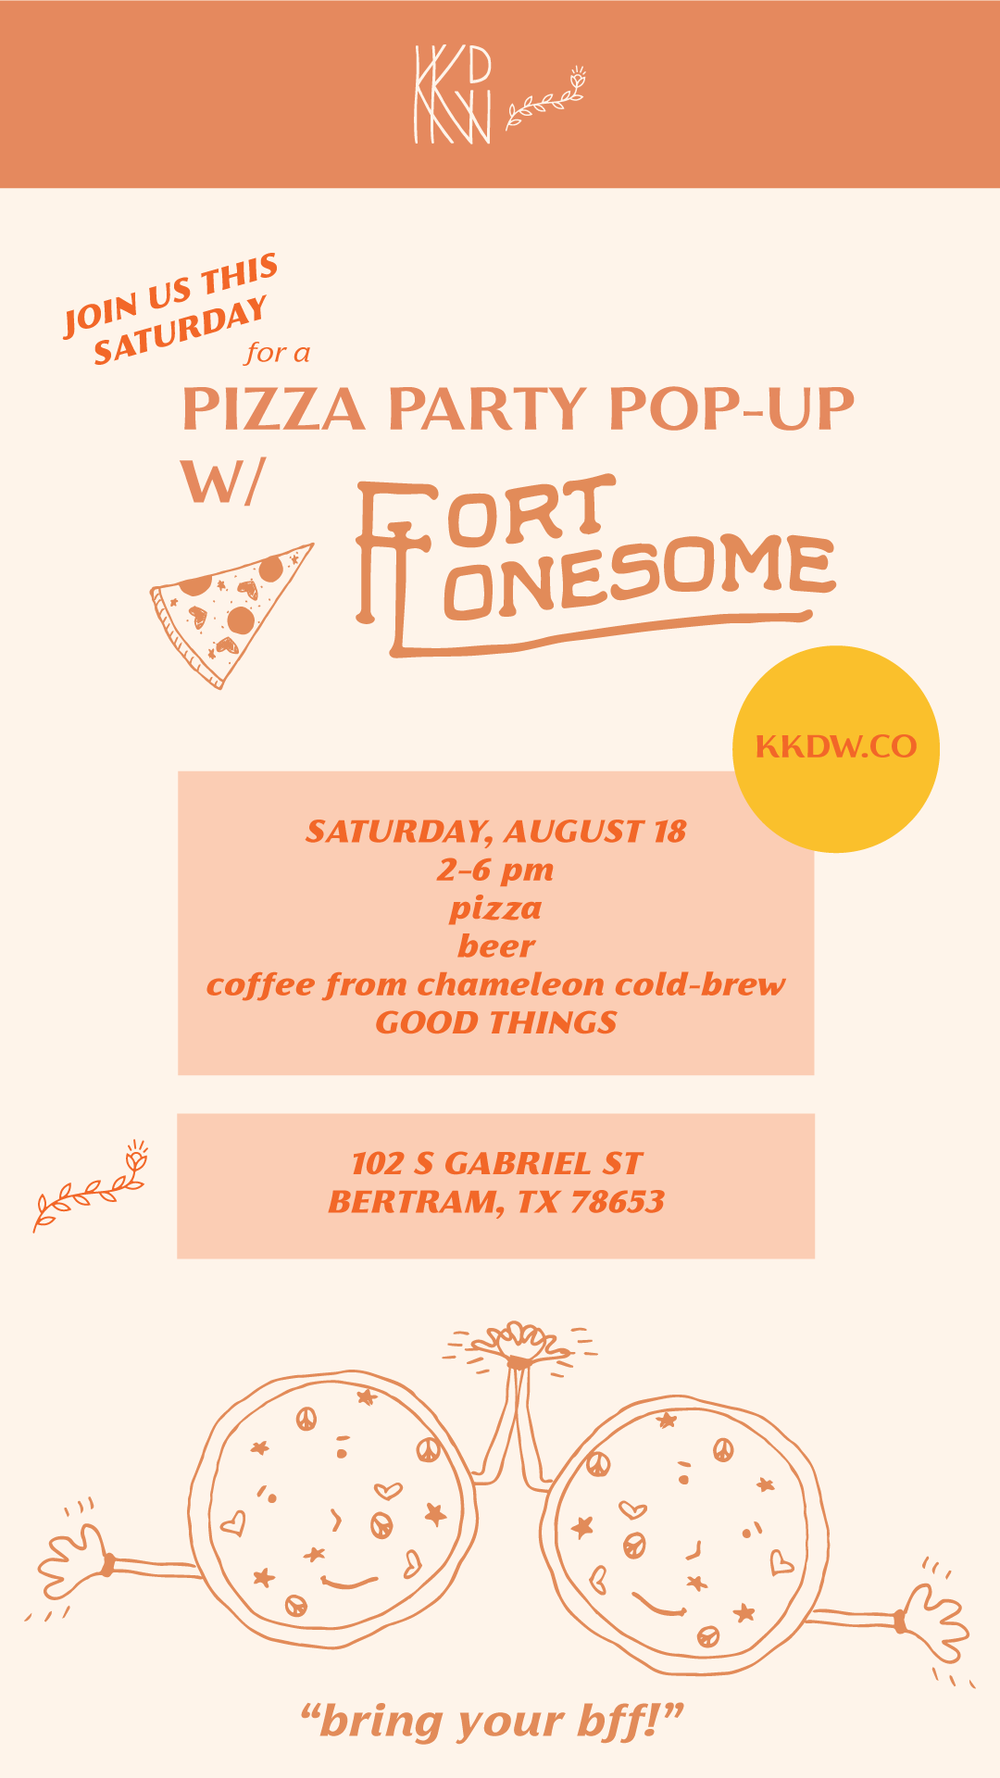 ft-lonesome-pizza-party-email-1.png